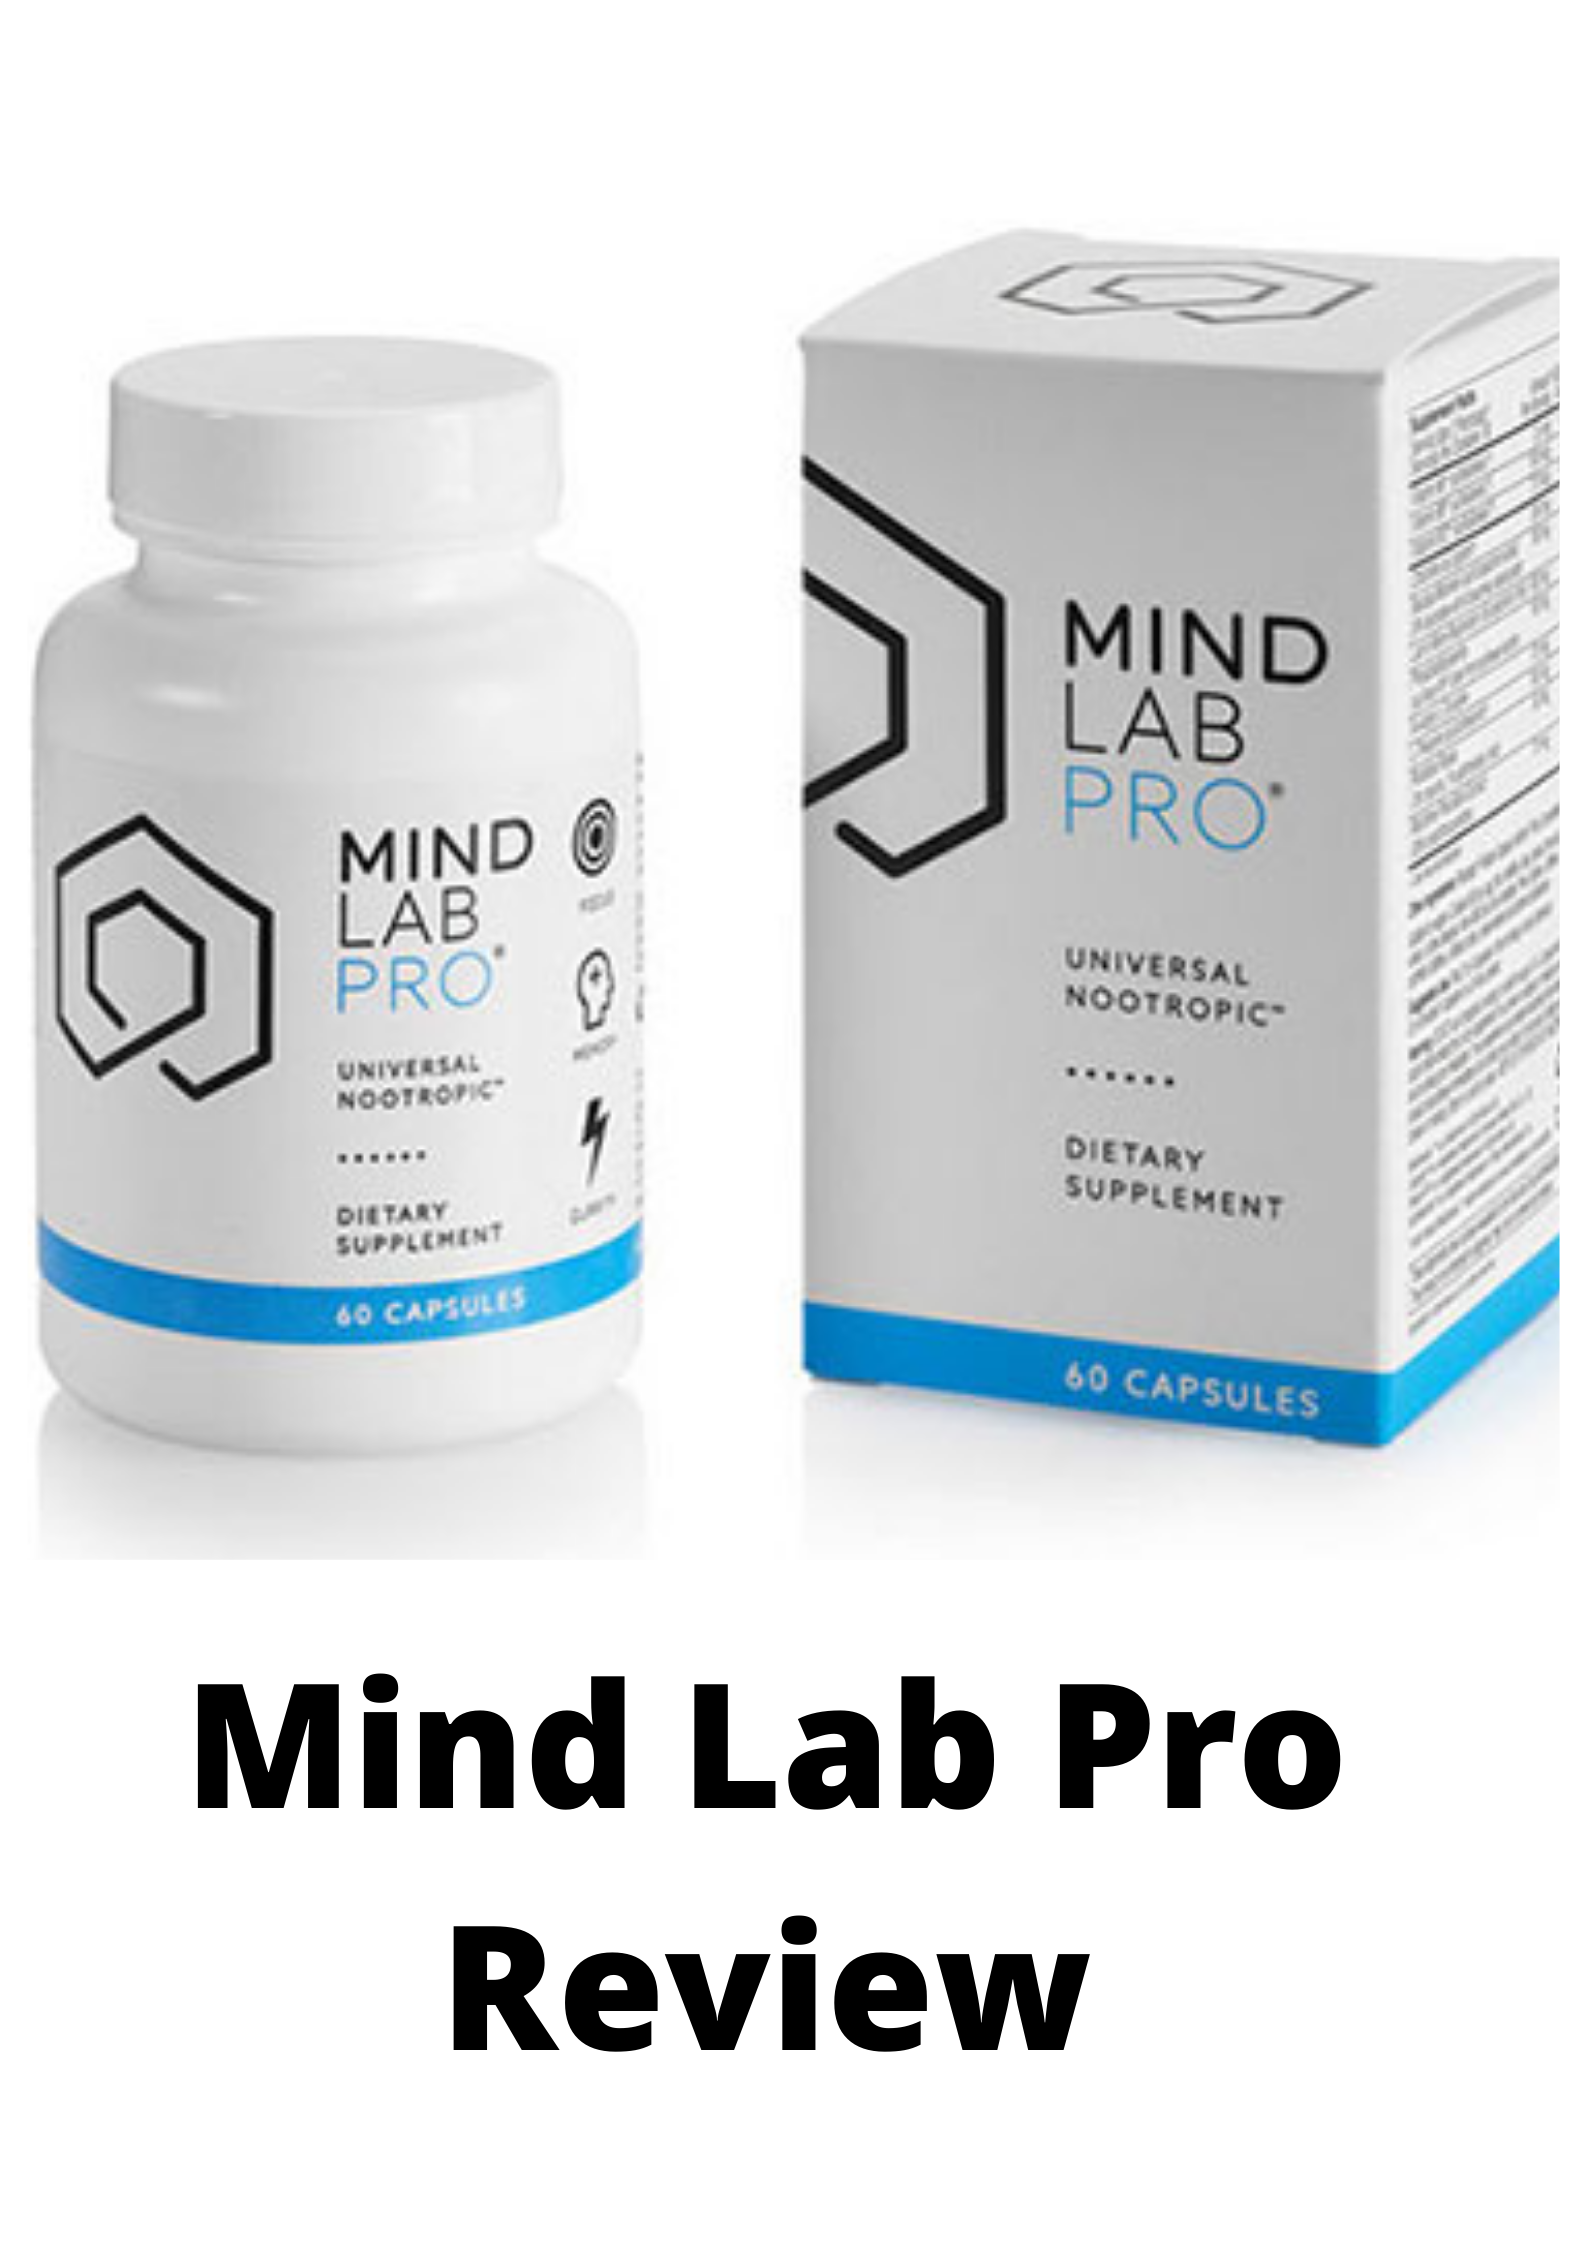 Mind Lab Pro Review where I will be telling you all you need to know when it comes to this supplement